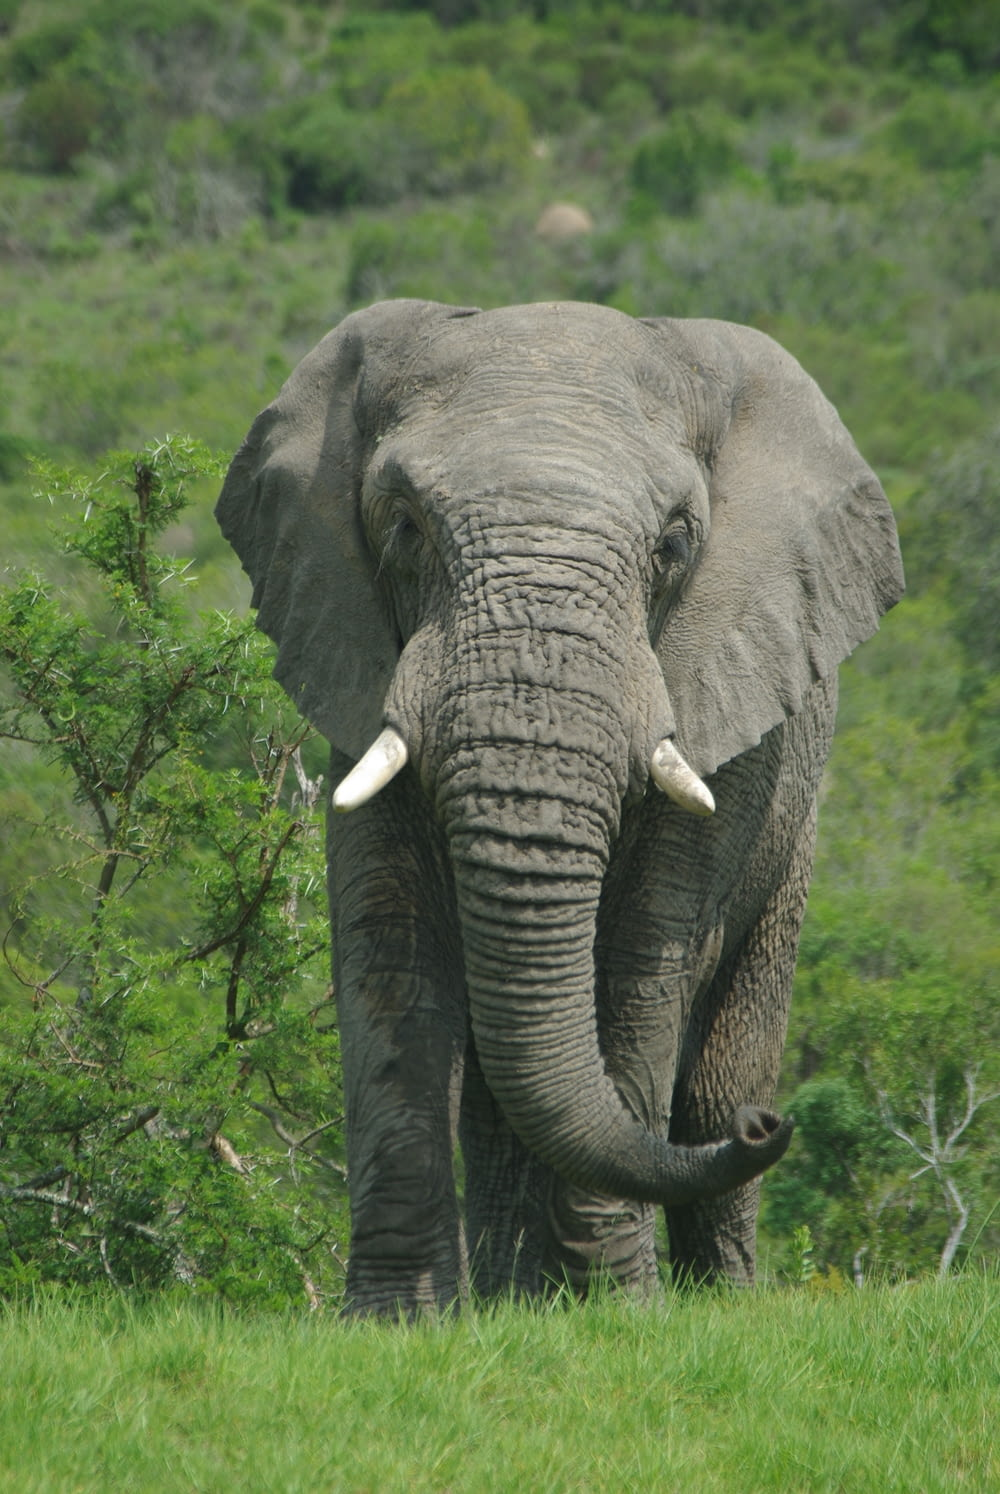 elephant standing on green grass field during daytime